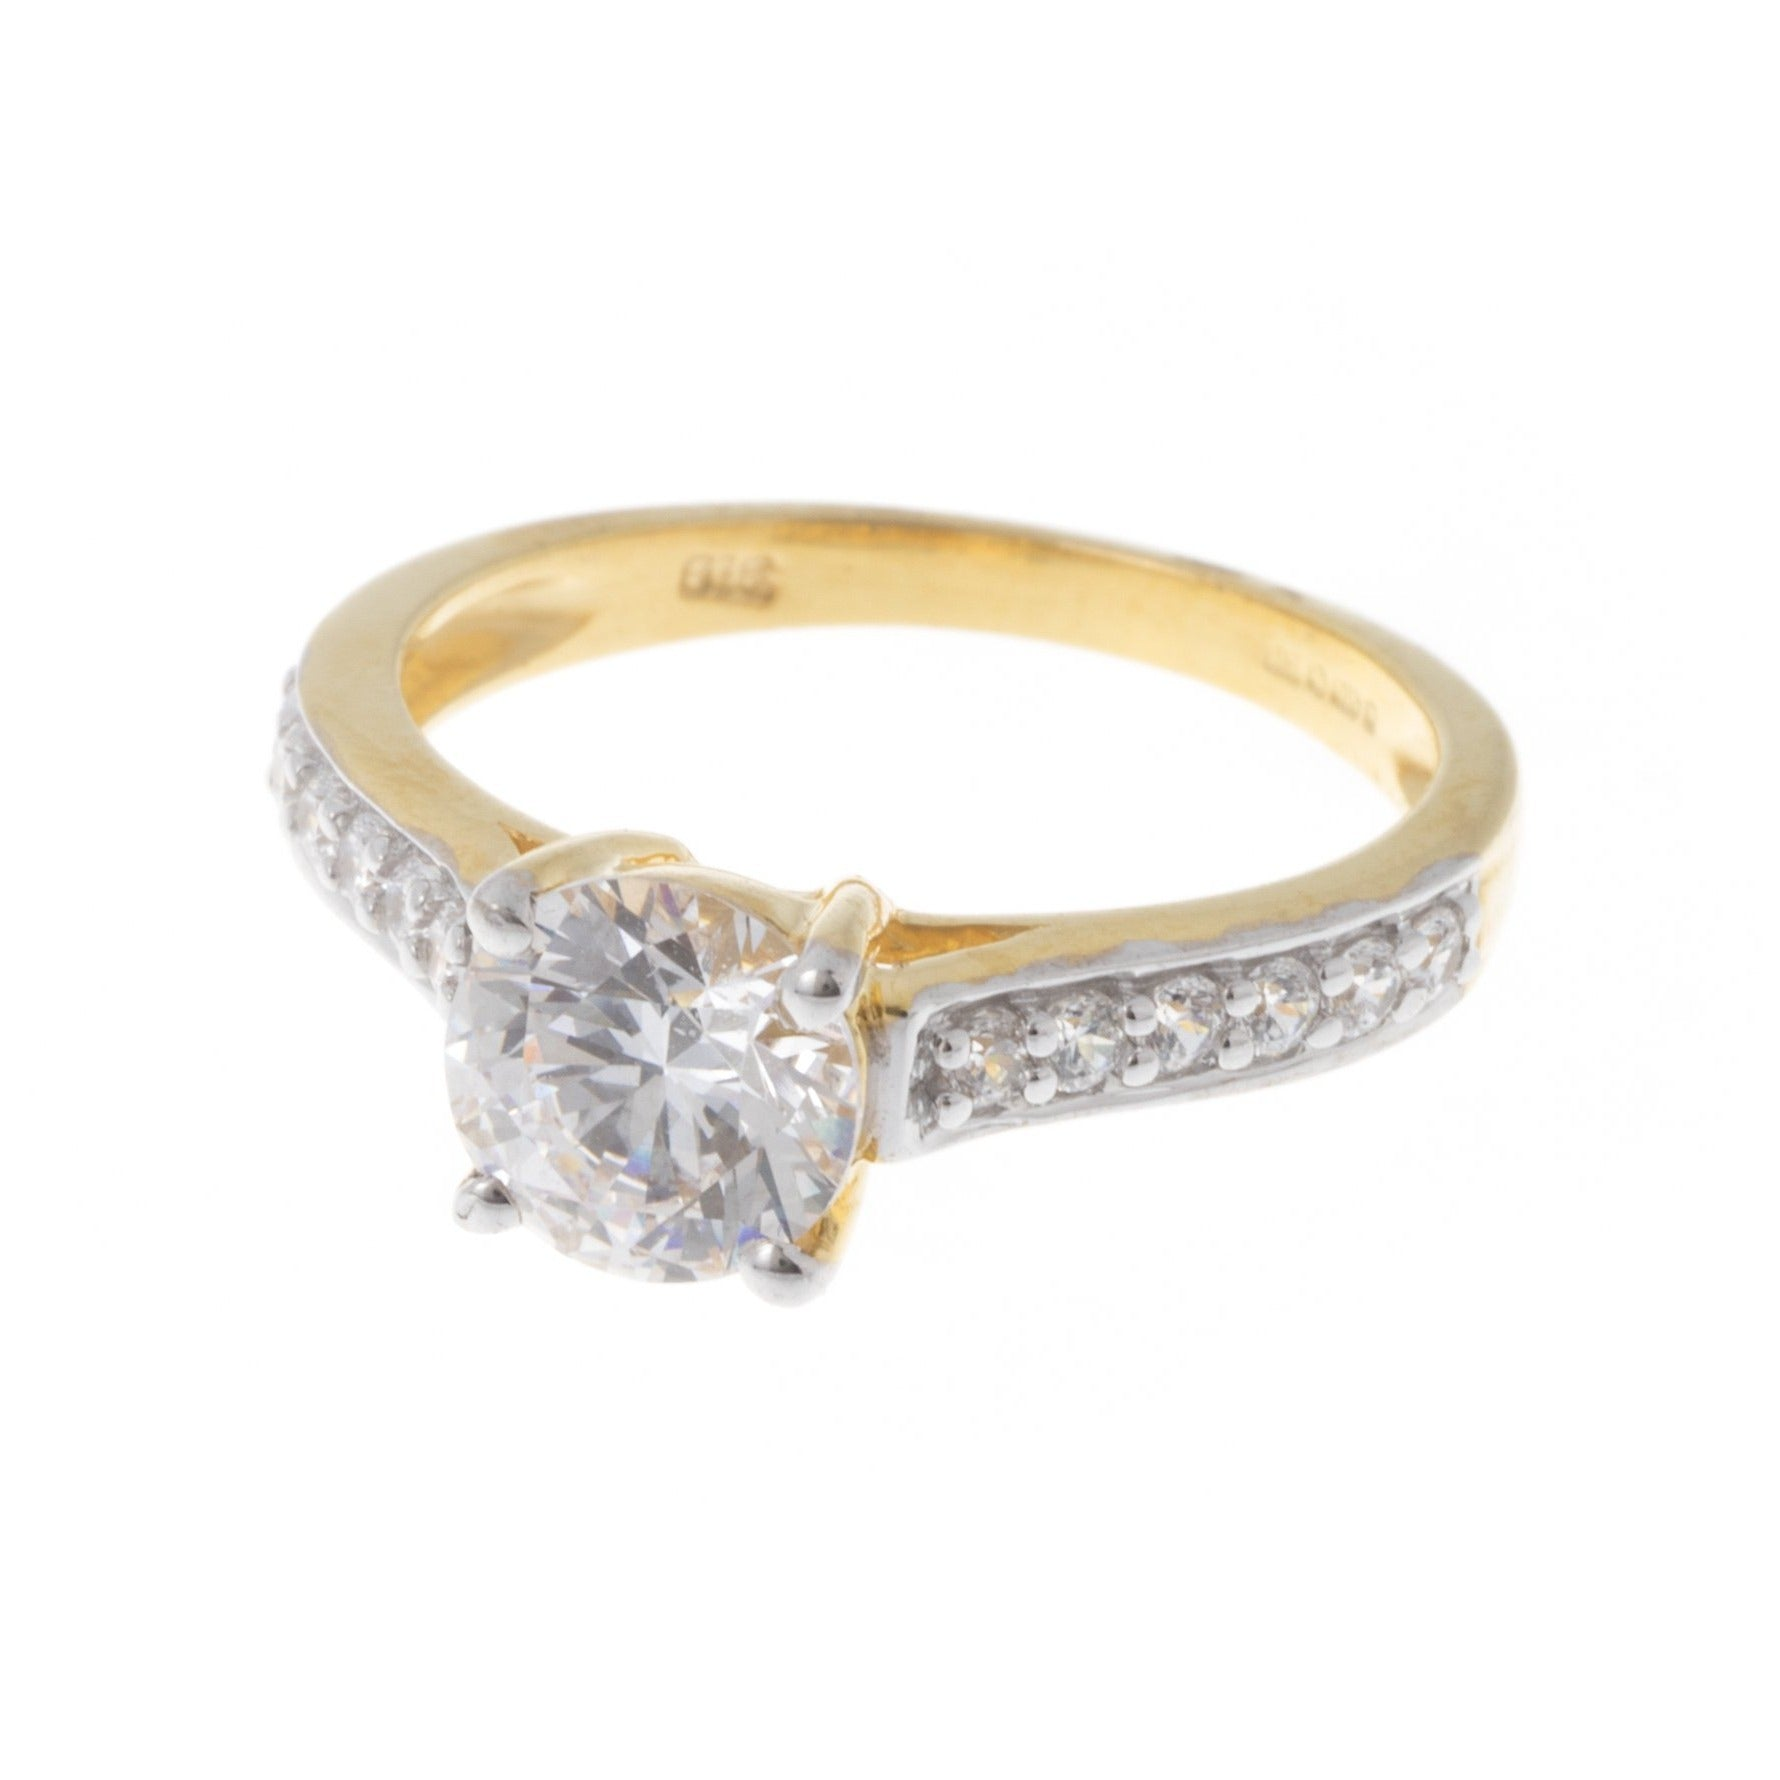 22ct Gold Cubic Zirconia Engagement Ring set with Swarovski Zirconias VLR031